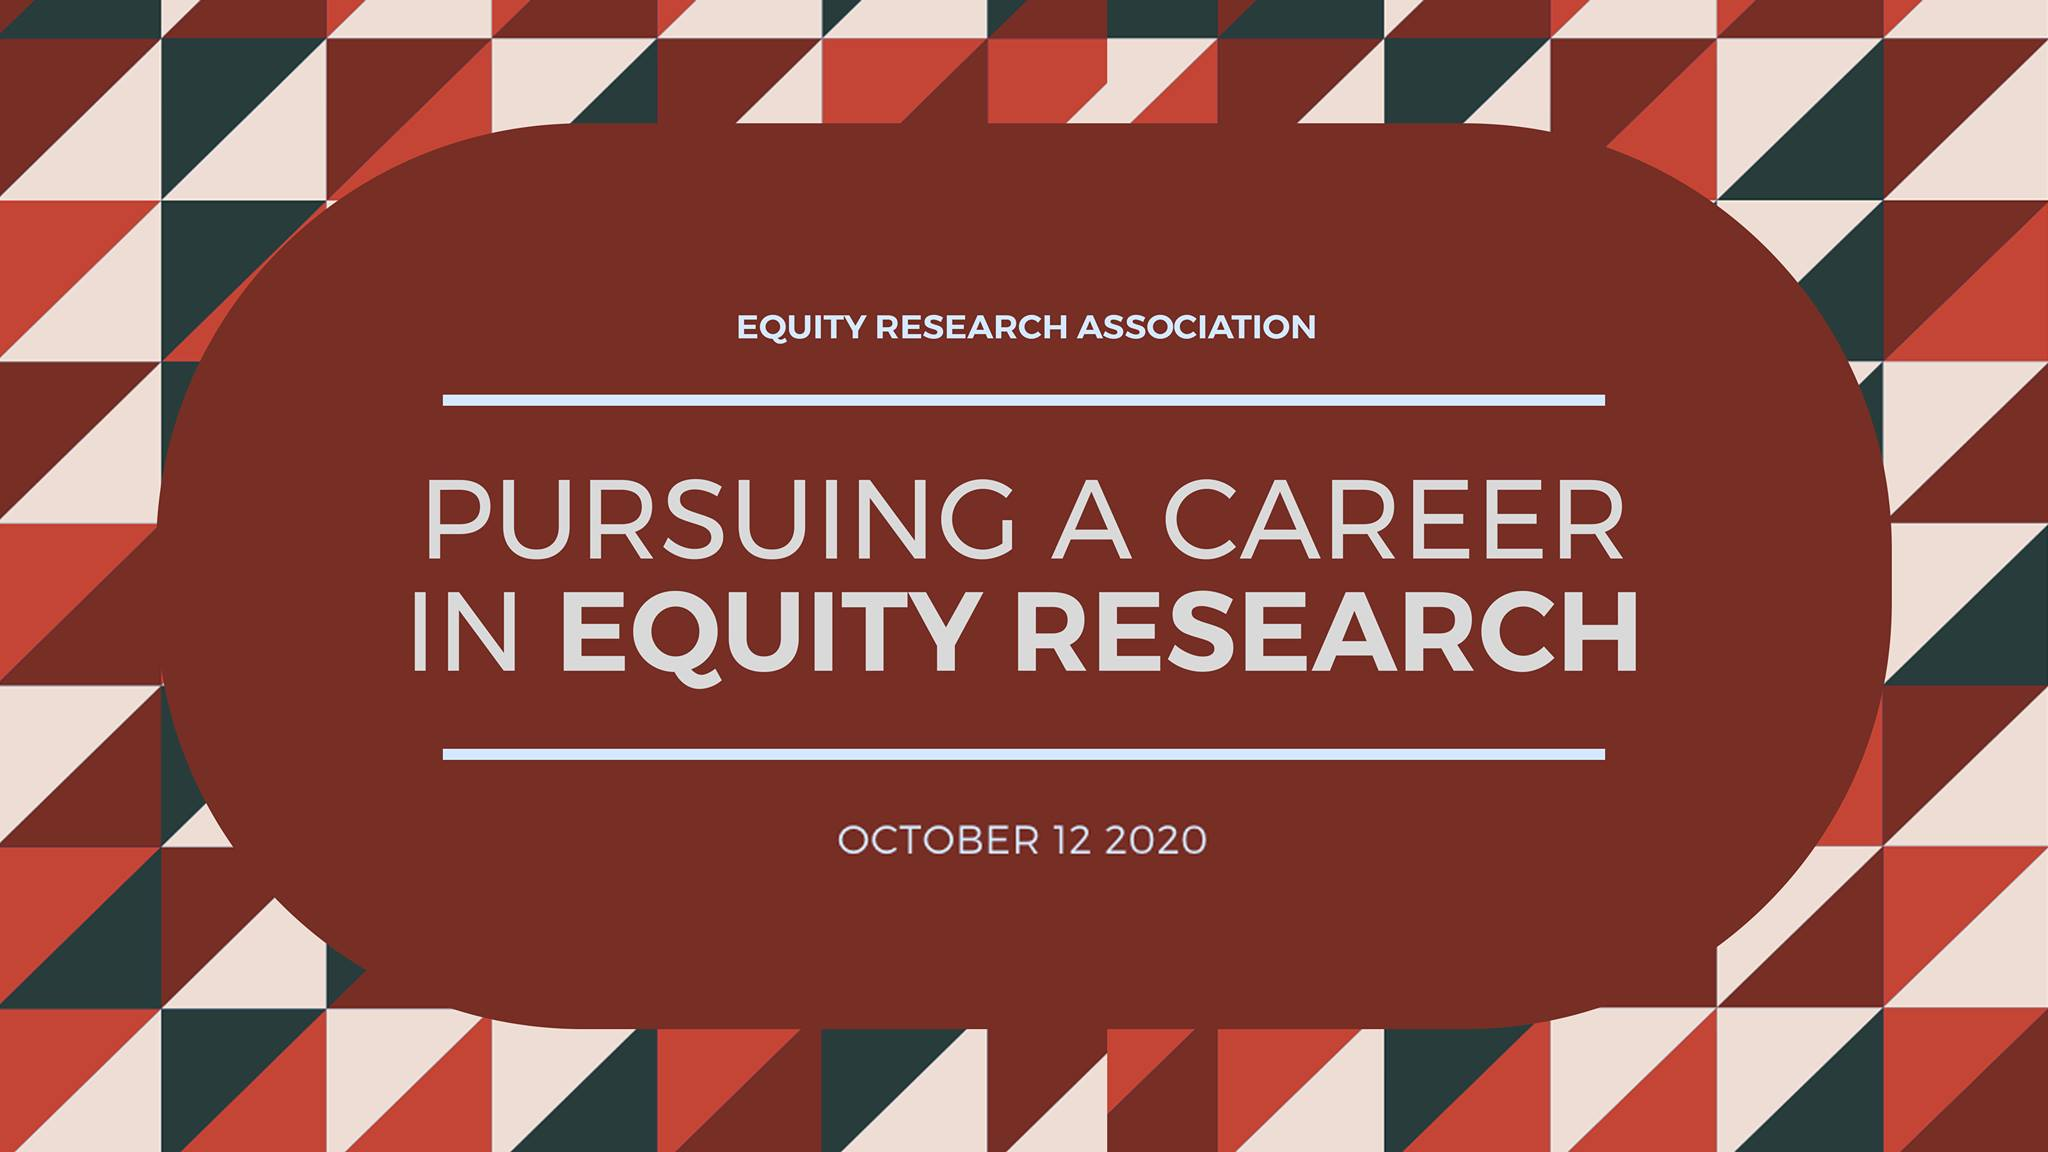 Pursuing a Career in Equity Research